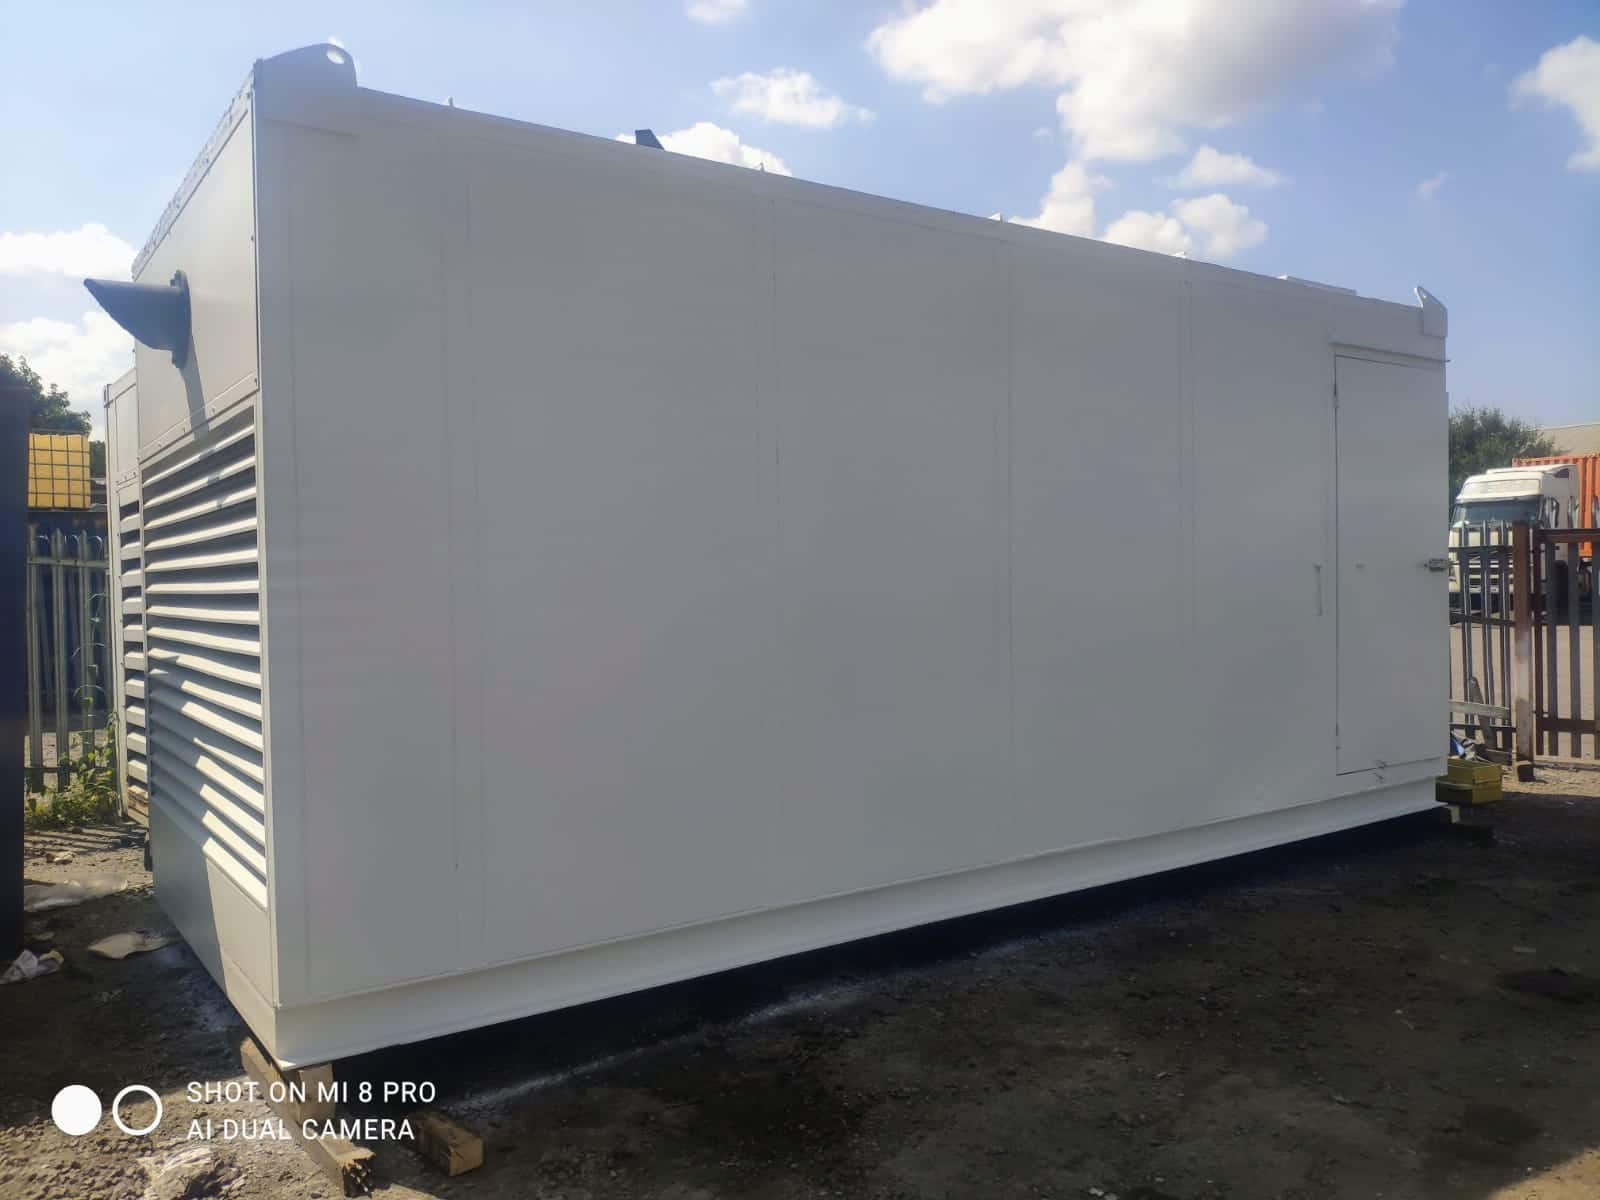 500 kVA FG Wilson Perkins/Leroy Generator fitted in a 20ft Acoustic Container